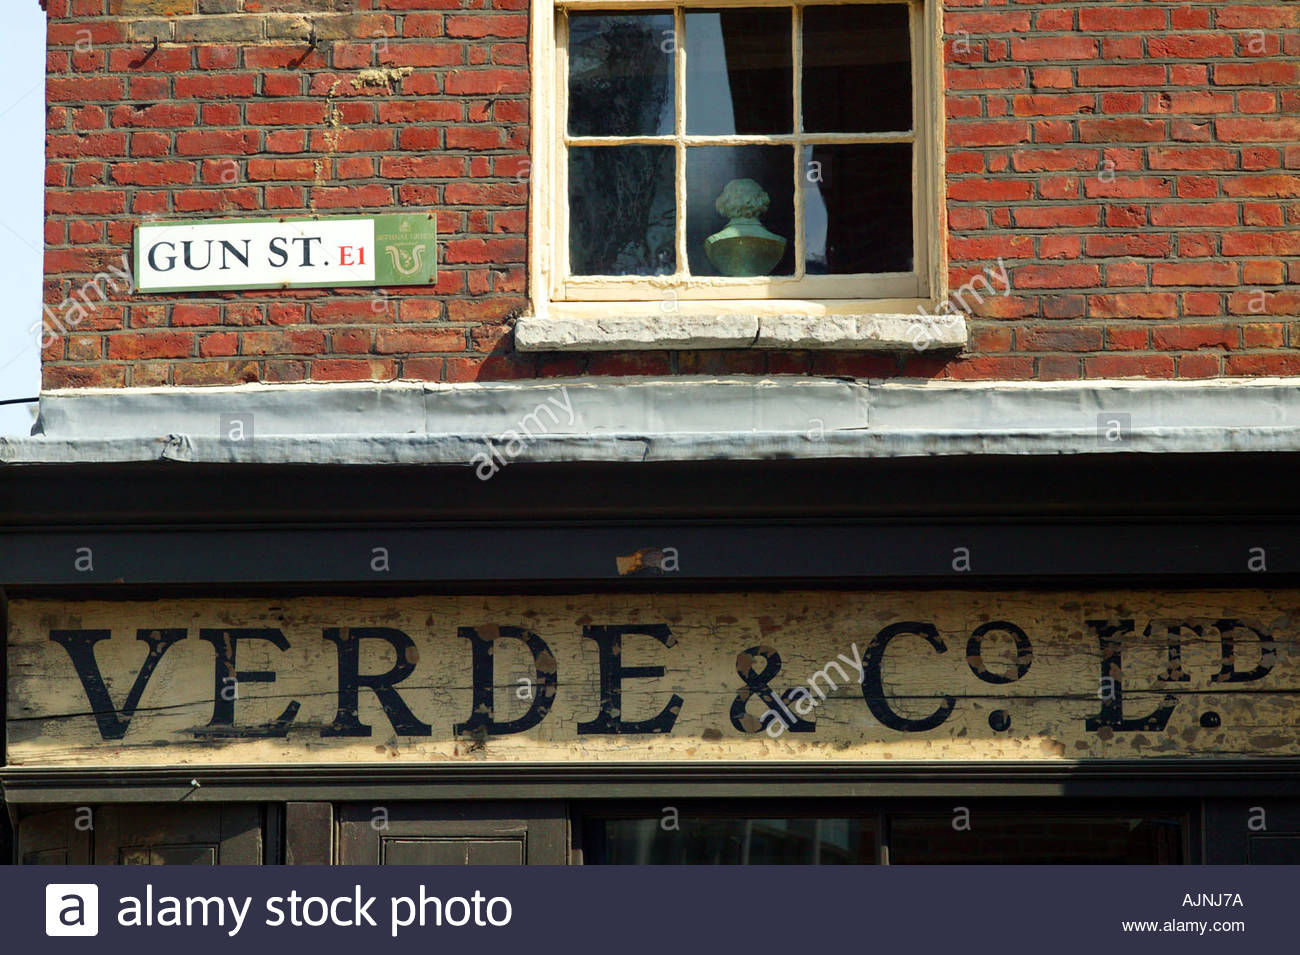 old shop sign with road sign for gun street e1 east london